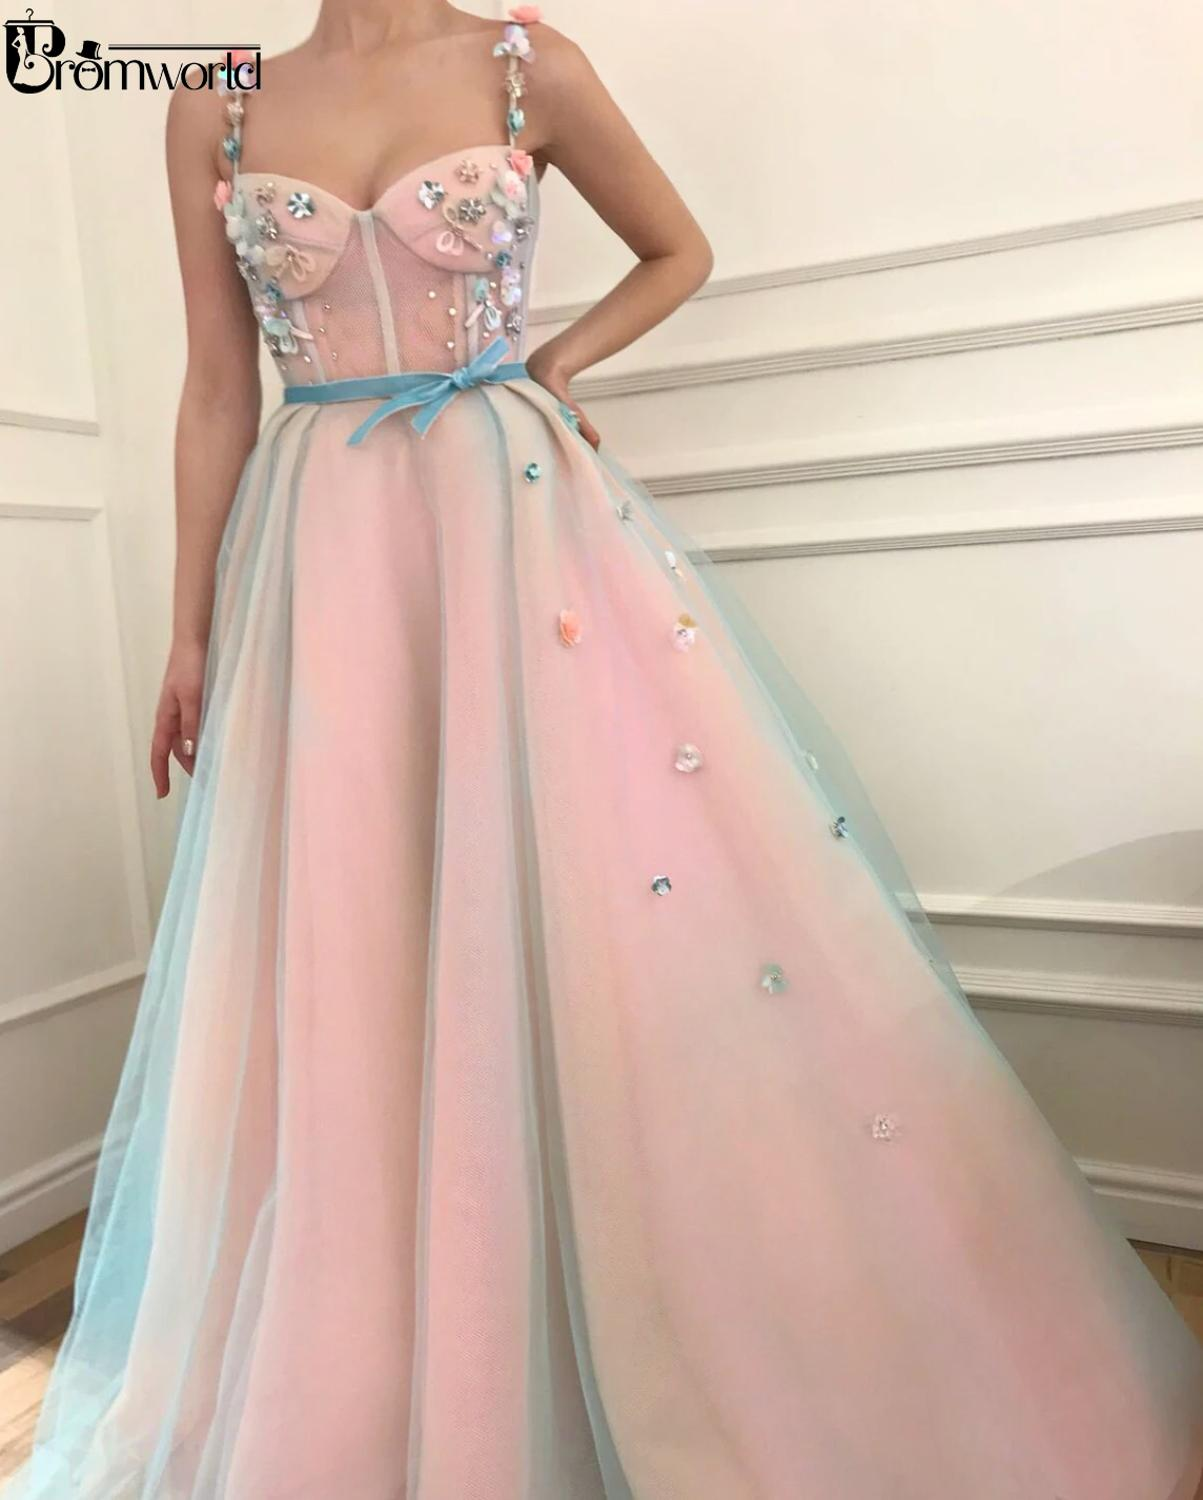 Sweetheart Flowers Pink Prom Dresses Long 2020 Crystal A-Line Robe De Soiree Spaghetti Straps Tulle Evening Dress Prom Gowns